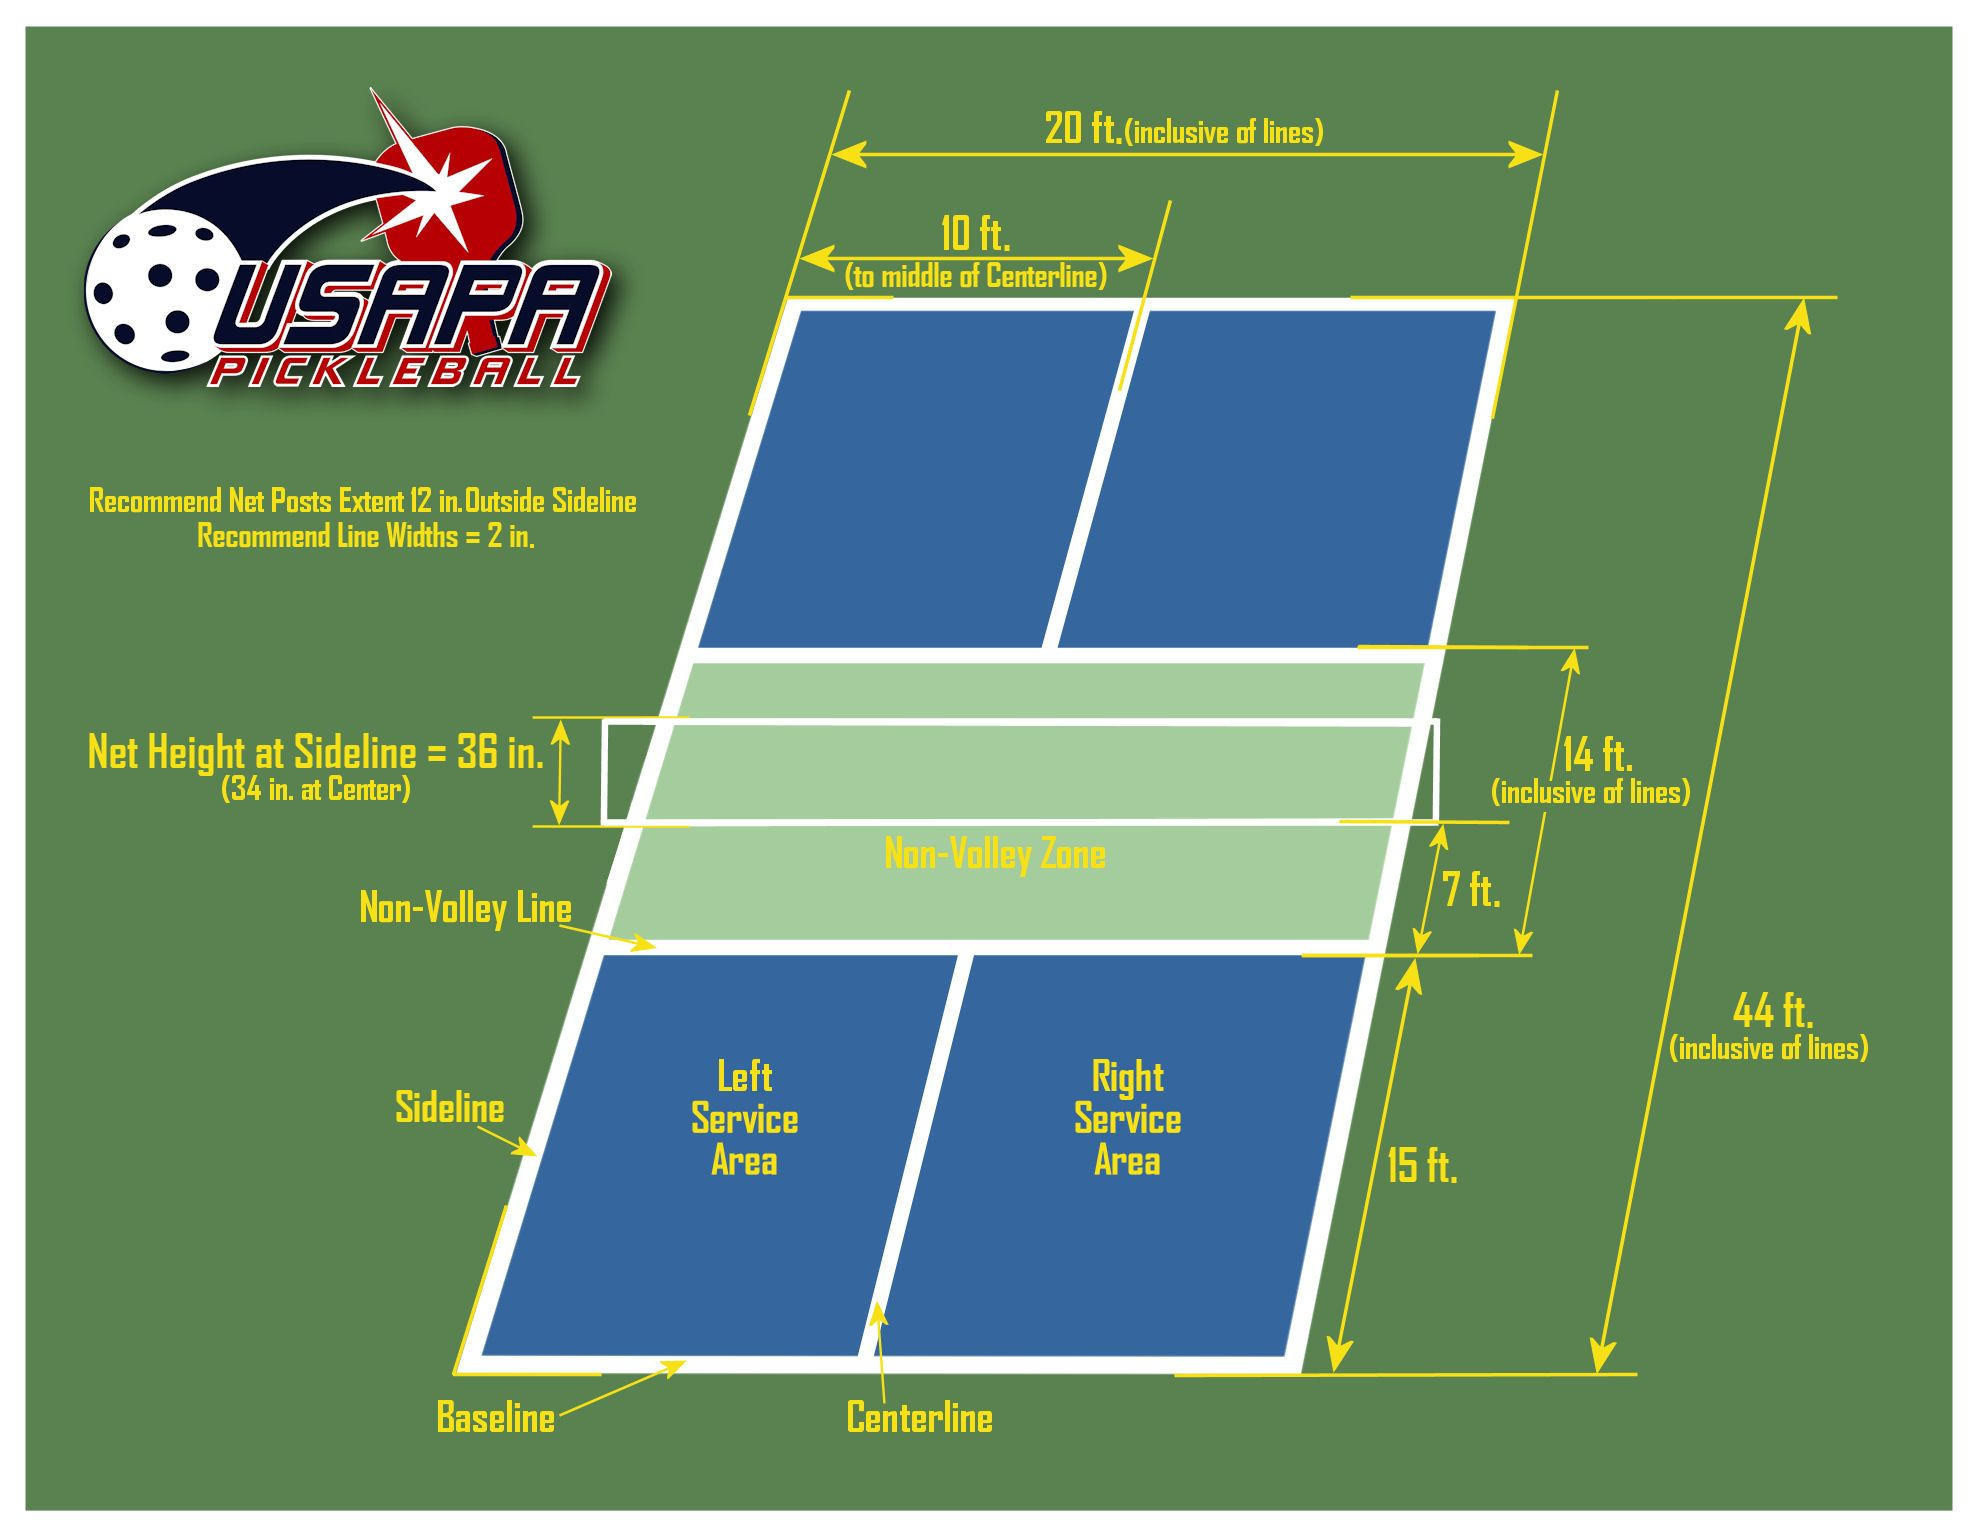 Pickle Ball Court Diagram Pickleball Court Pickleball Backyard Basketball